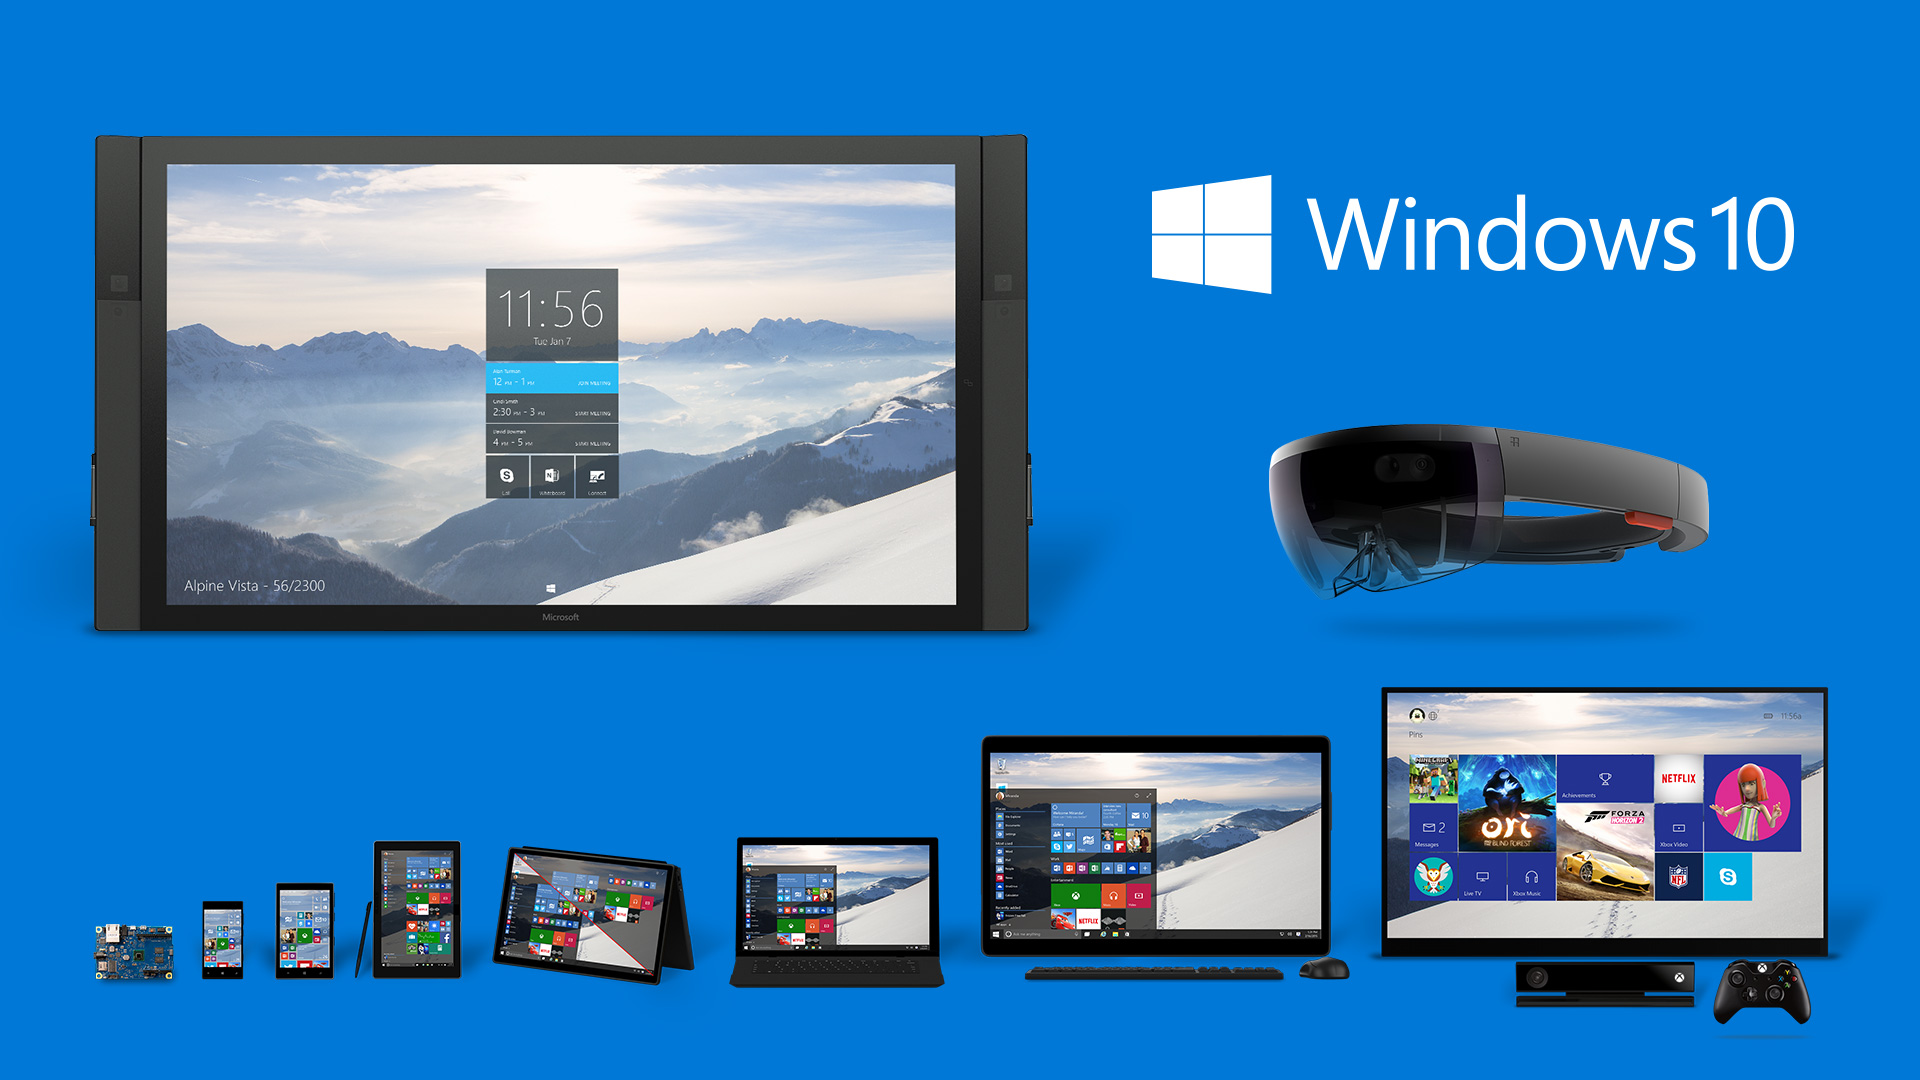 Windows 10: All You Need To Know